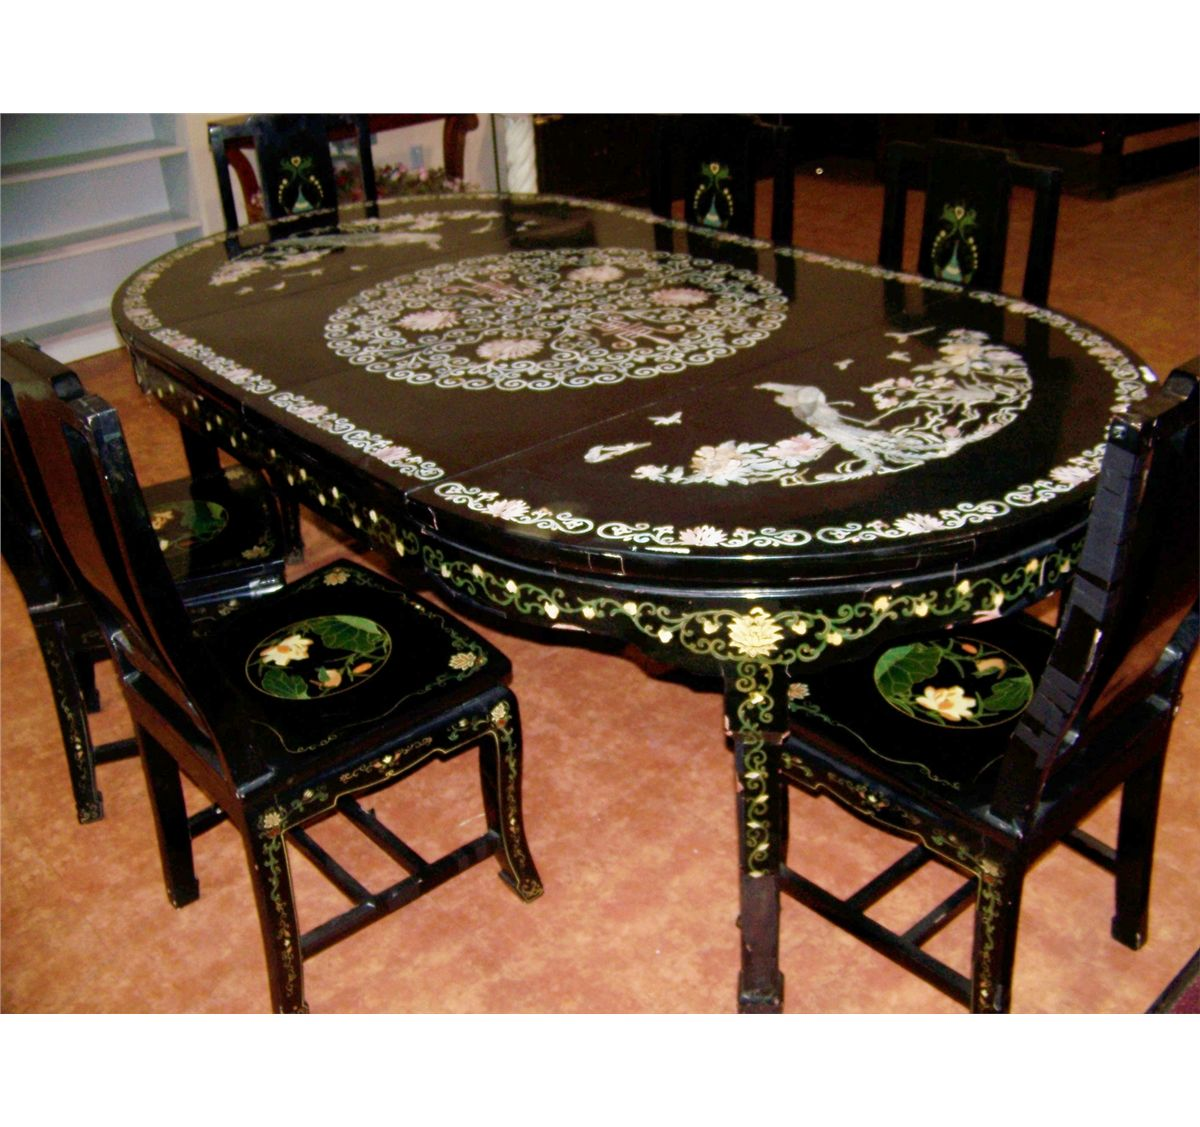 ... Image 3 : VINTAGE MOTHER OF PEARL INLAY CHINESE DINING TABLE U0026 SIX  CHAIRS